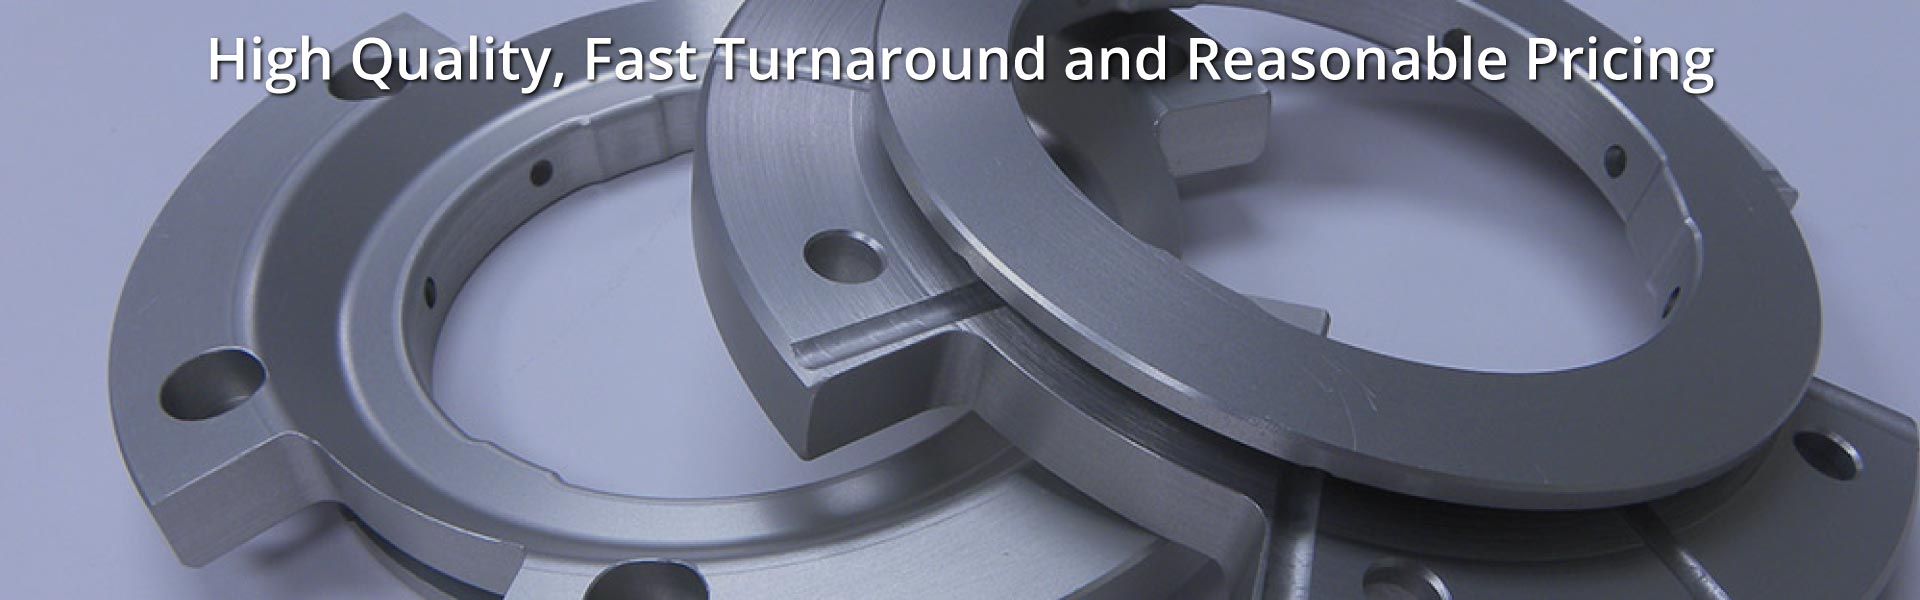 High Quality, Fast Turnaround and Reasonable Pricing | clear Anodizing on Aluminum